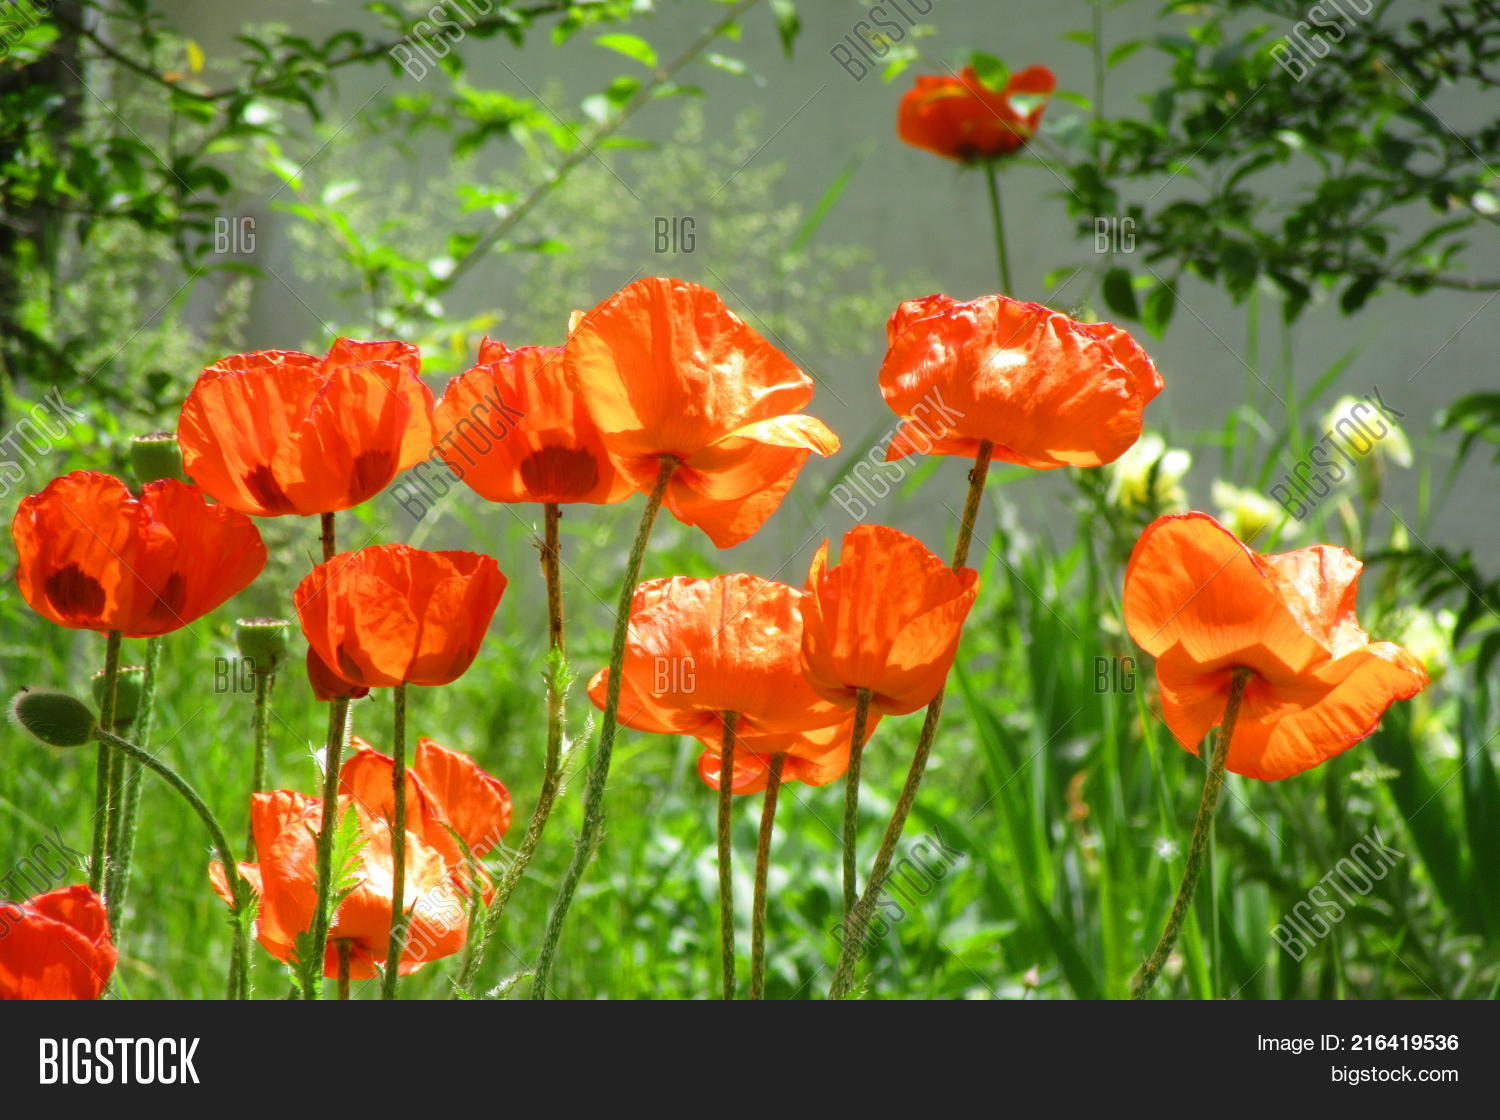 Bright Red Flowers Image Photo Free Trial Bigstock